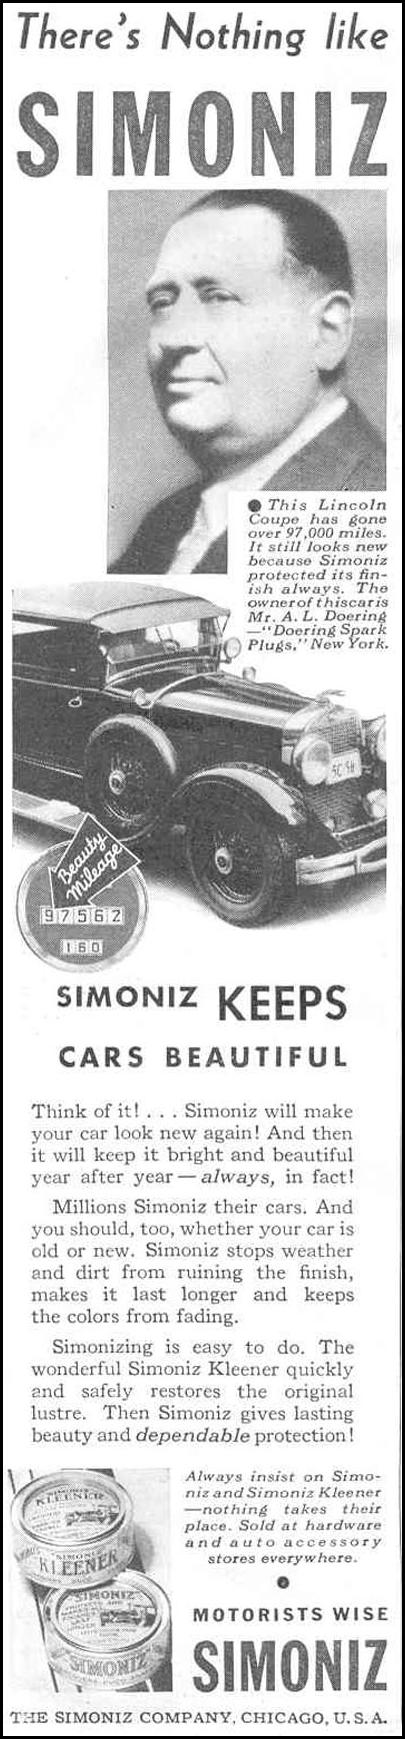 SIMONIZ CAR WAX GOOD HOUSEKEEPING 06/01/1933 p. 114